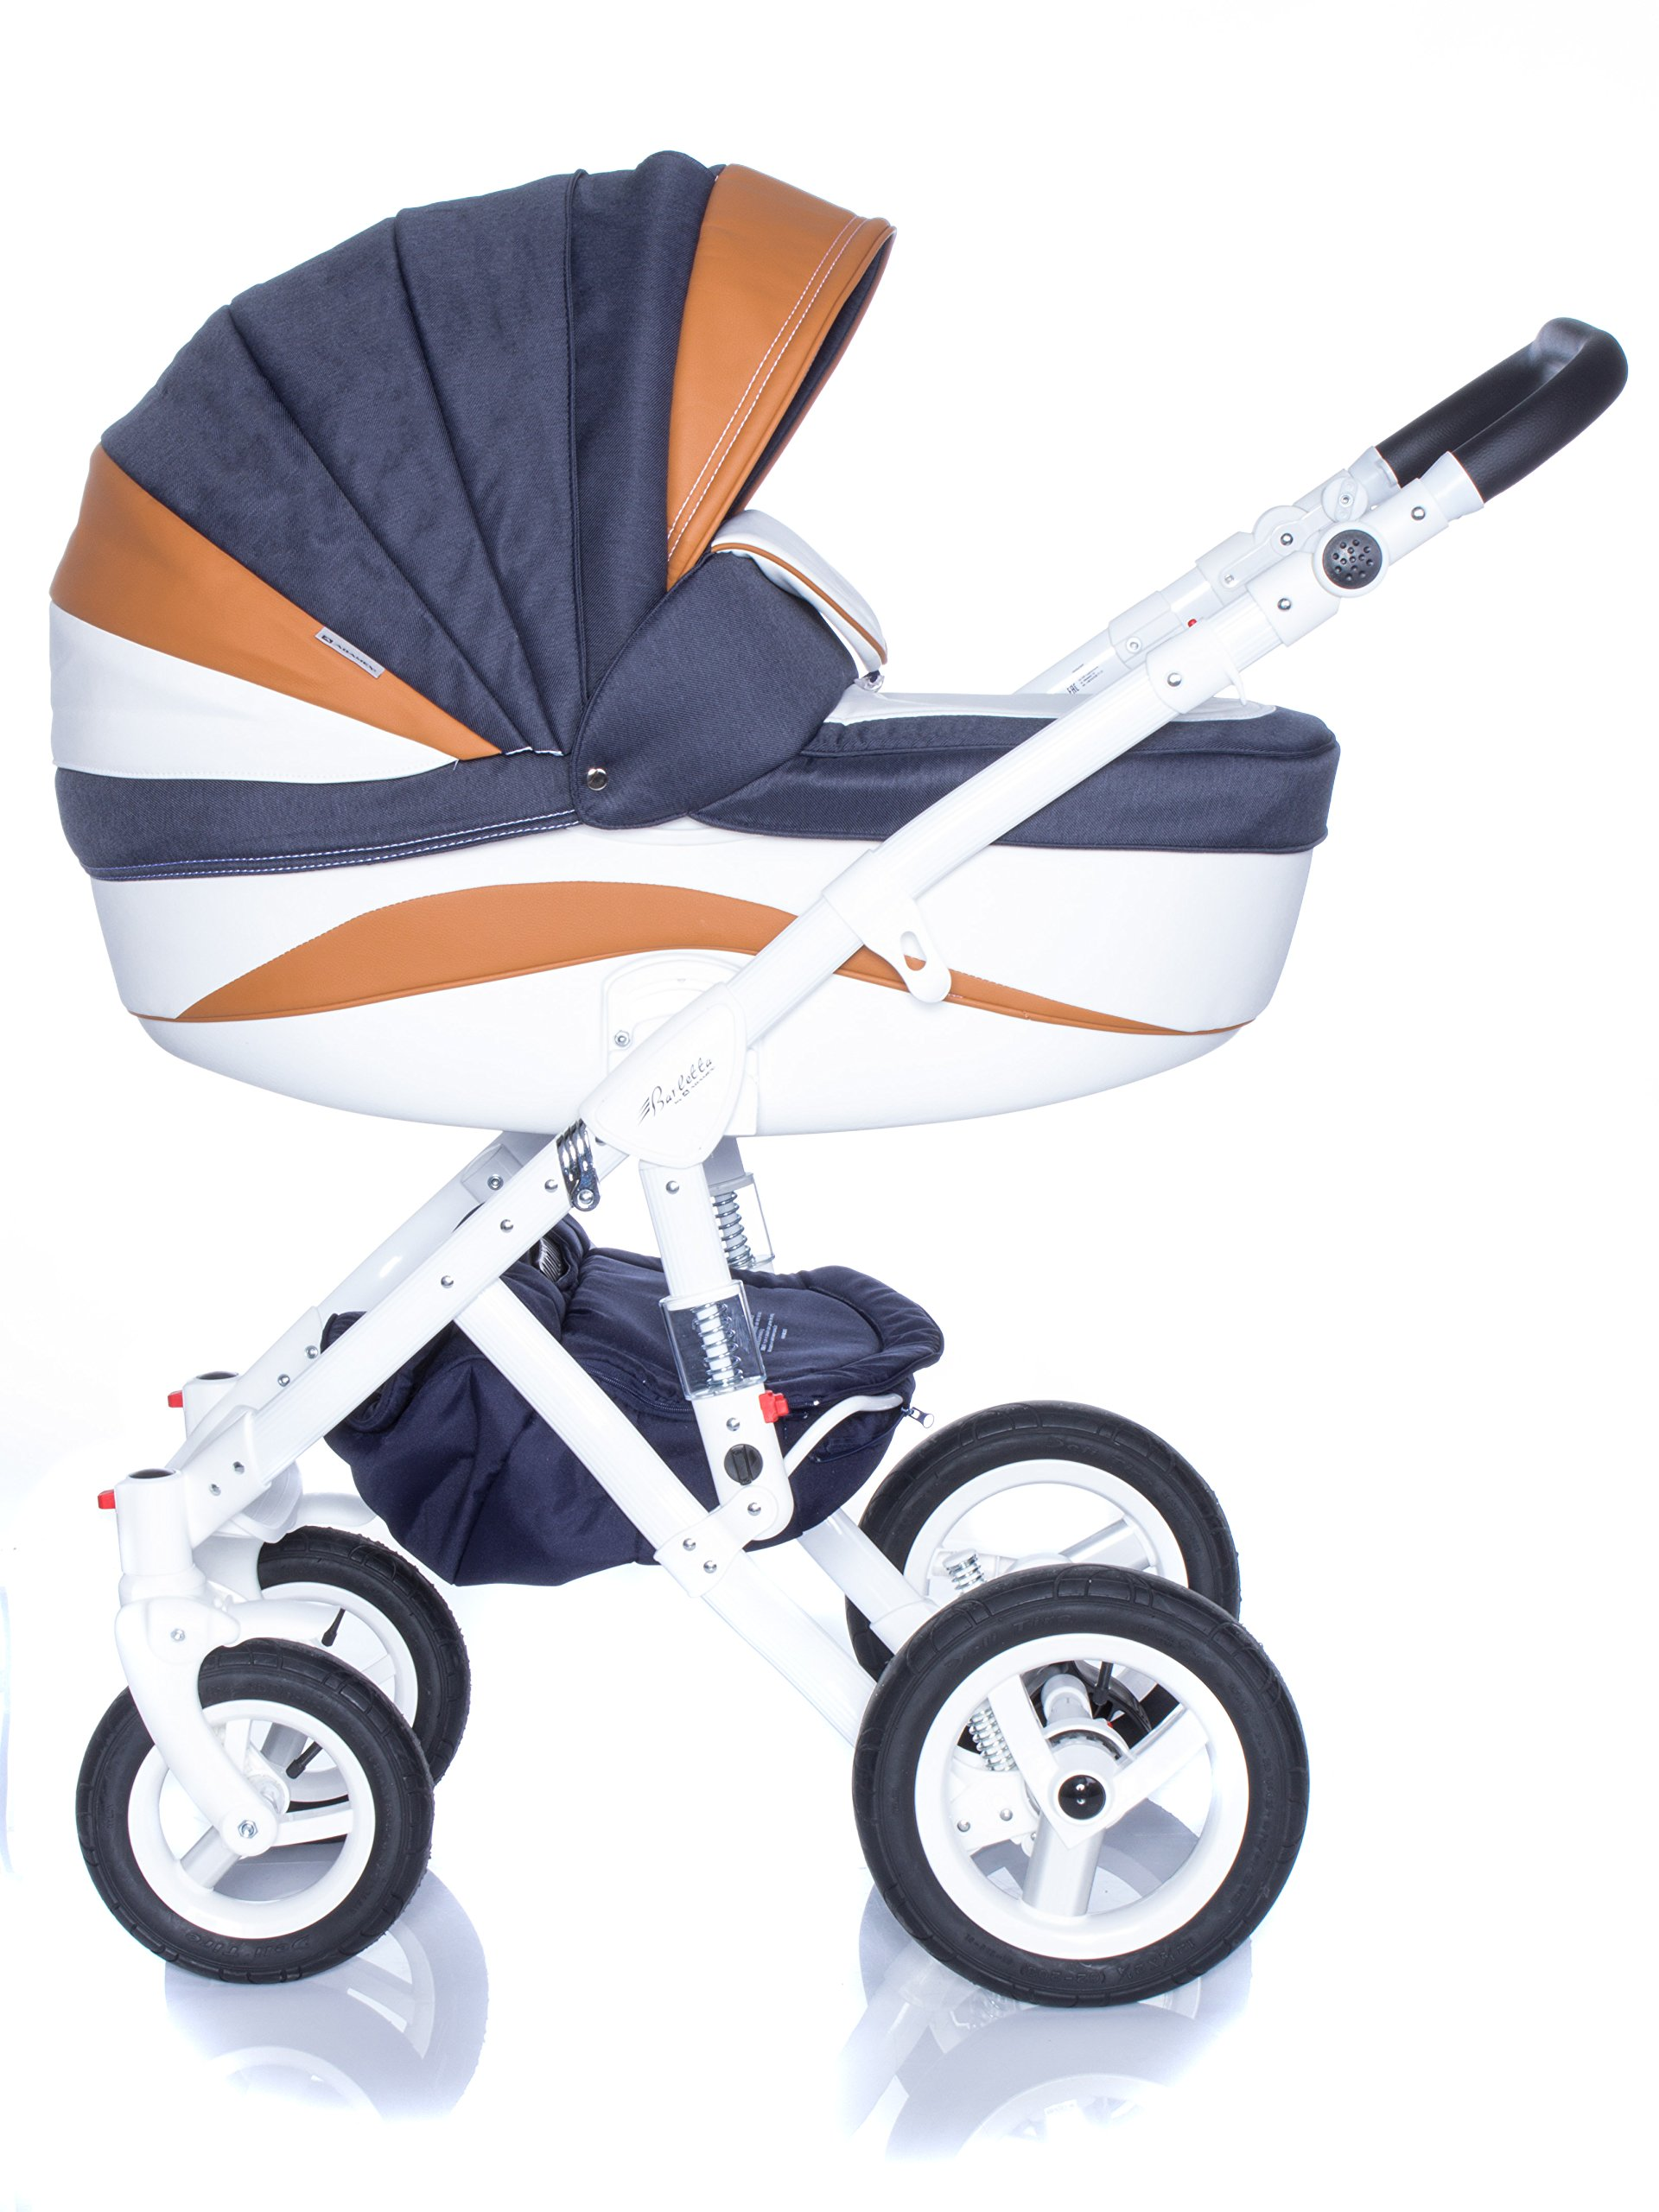 Baby Pram Pushchair Stroller Buggy, Travel System Adamex Barletta New B7 Fox-Navy-White 2in1 + ADAPTORS for CAR Seats: Maxi-COSI CYBEX KIDDY Be Safe Adamex Lockable swivel wheels and lockable side suspension system Light alluminium chassis with polyurethane wheels 2 separate modules + car seats adapters - big and deep baby tub functional sport seat and car seats adapters that can be attached to the following car seats: Maxi-Cosi: City, Cabrio fix, Pebble Cybex: Aton Kiddy: Evoluna i-Size, Evolution Pro 2 Be Safe: iZi Go 1